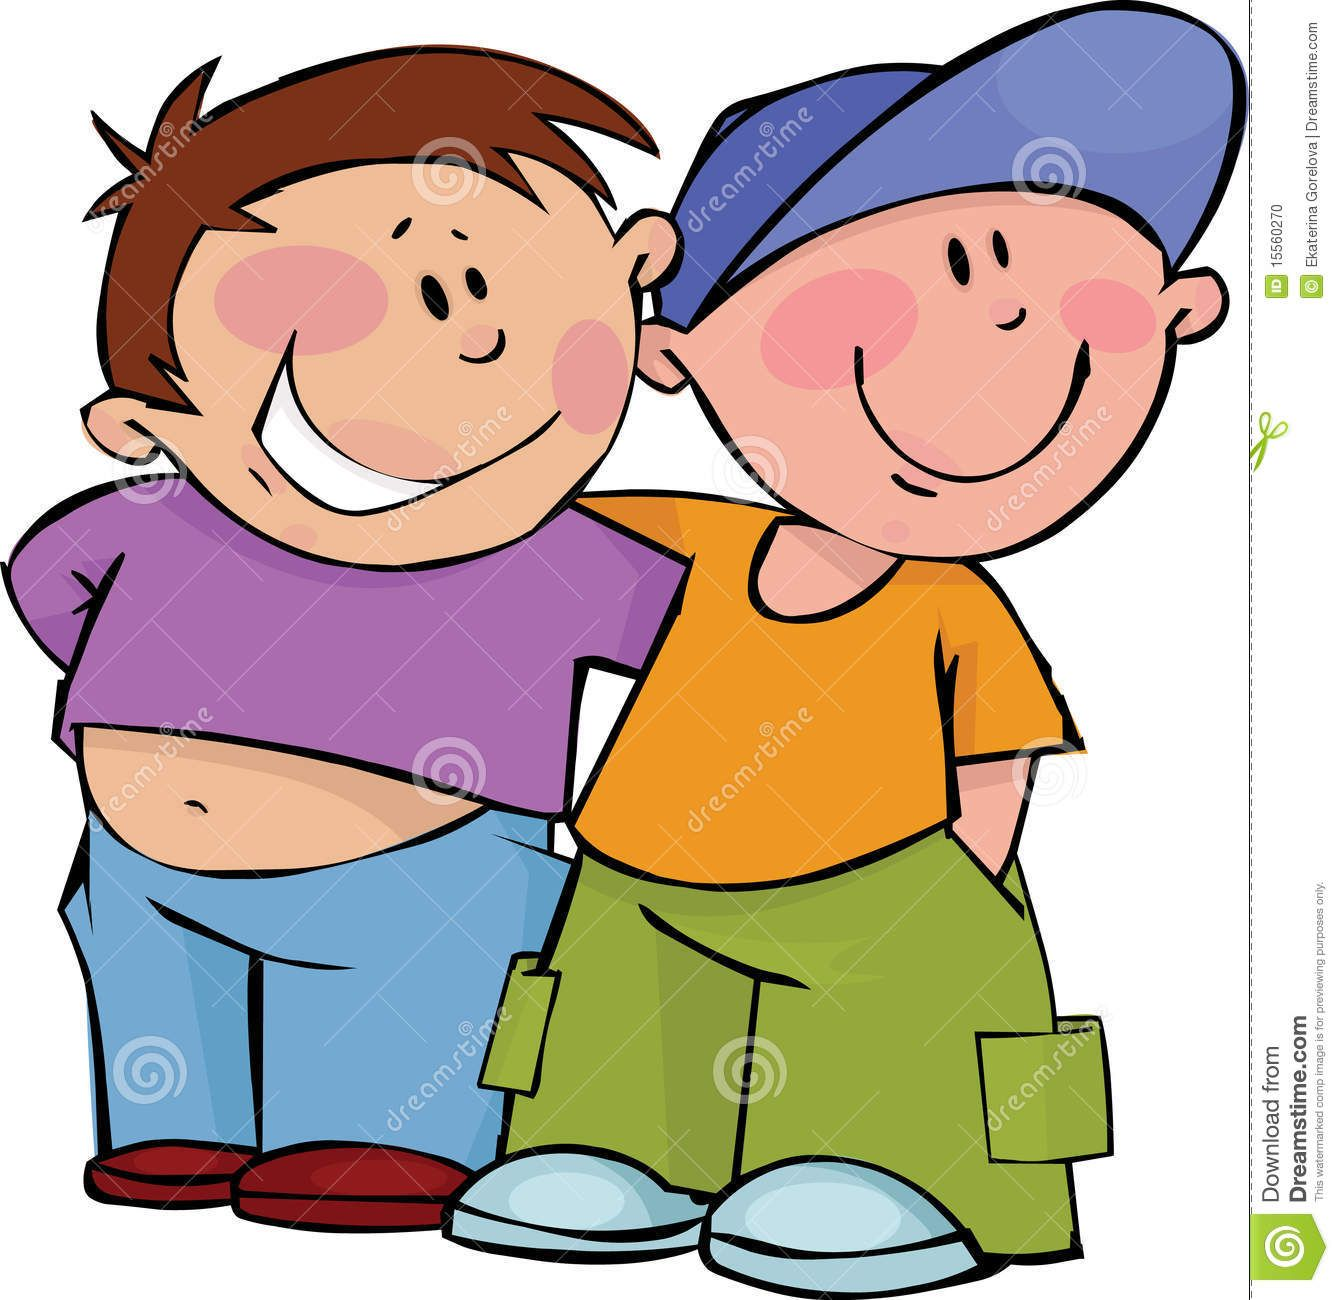 Friends two funny in. Boys clipart friendship